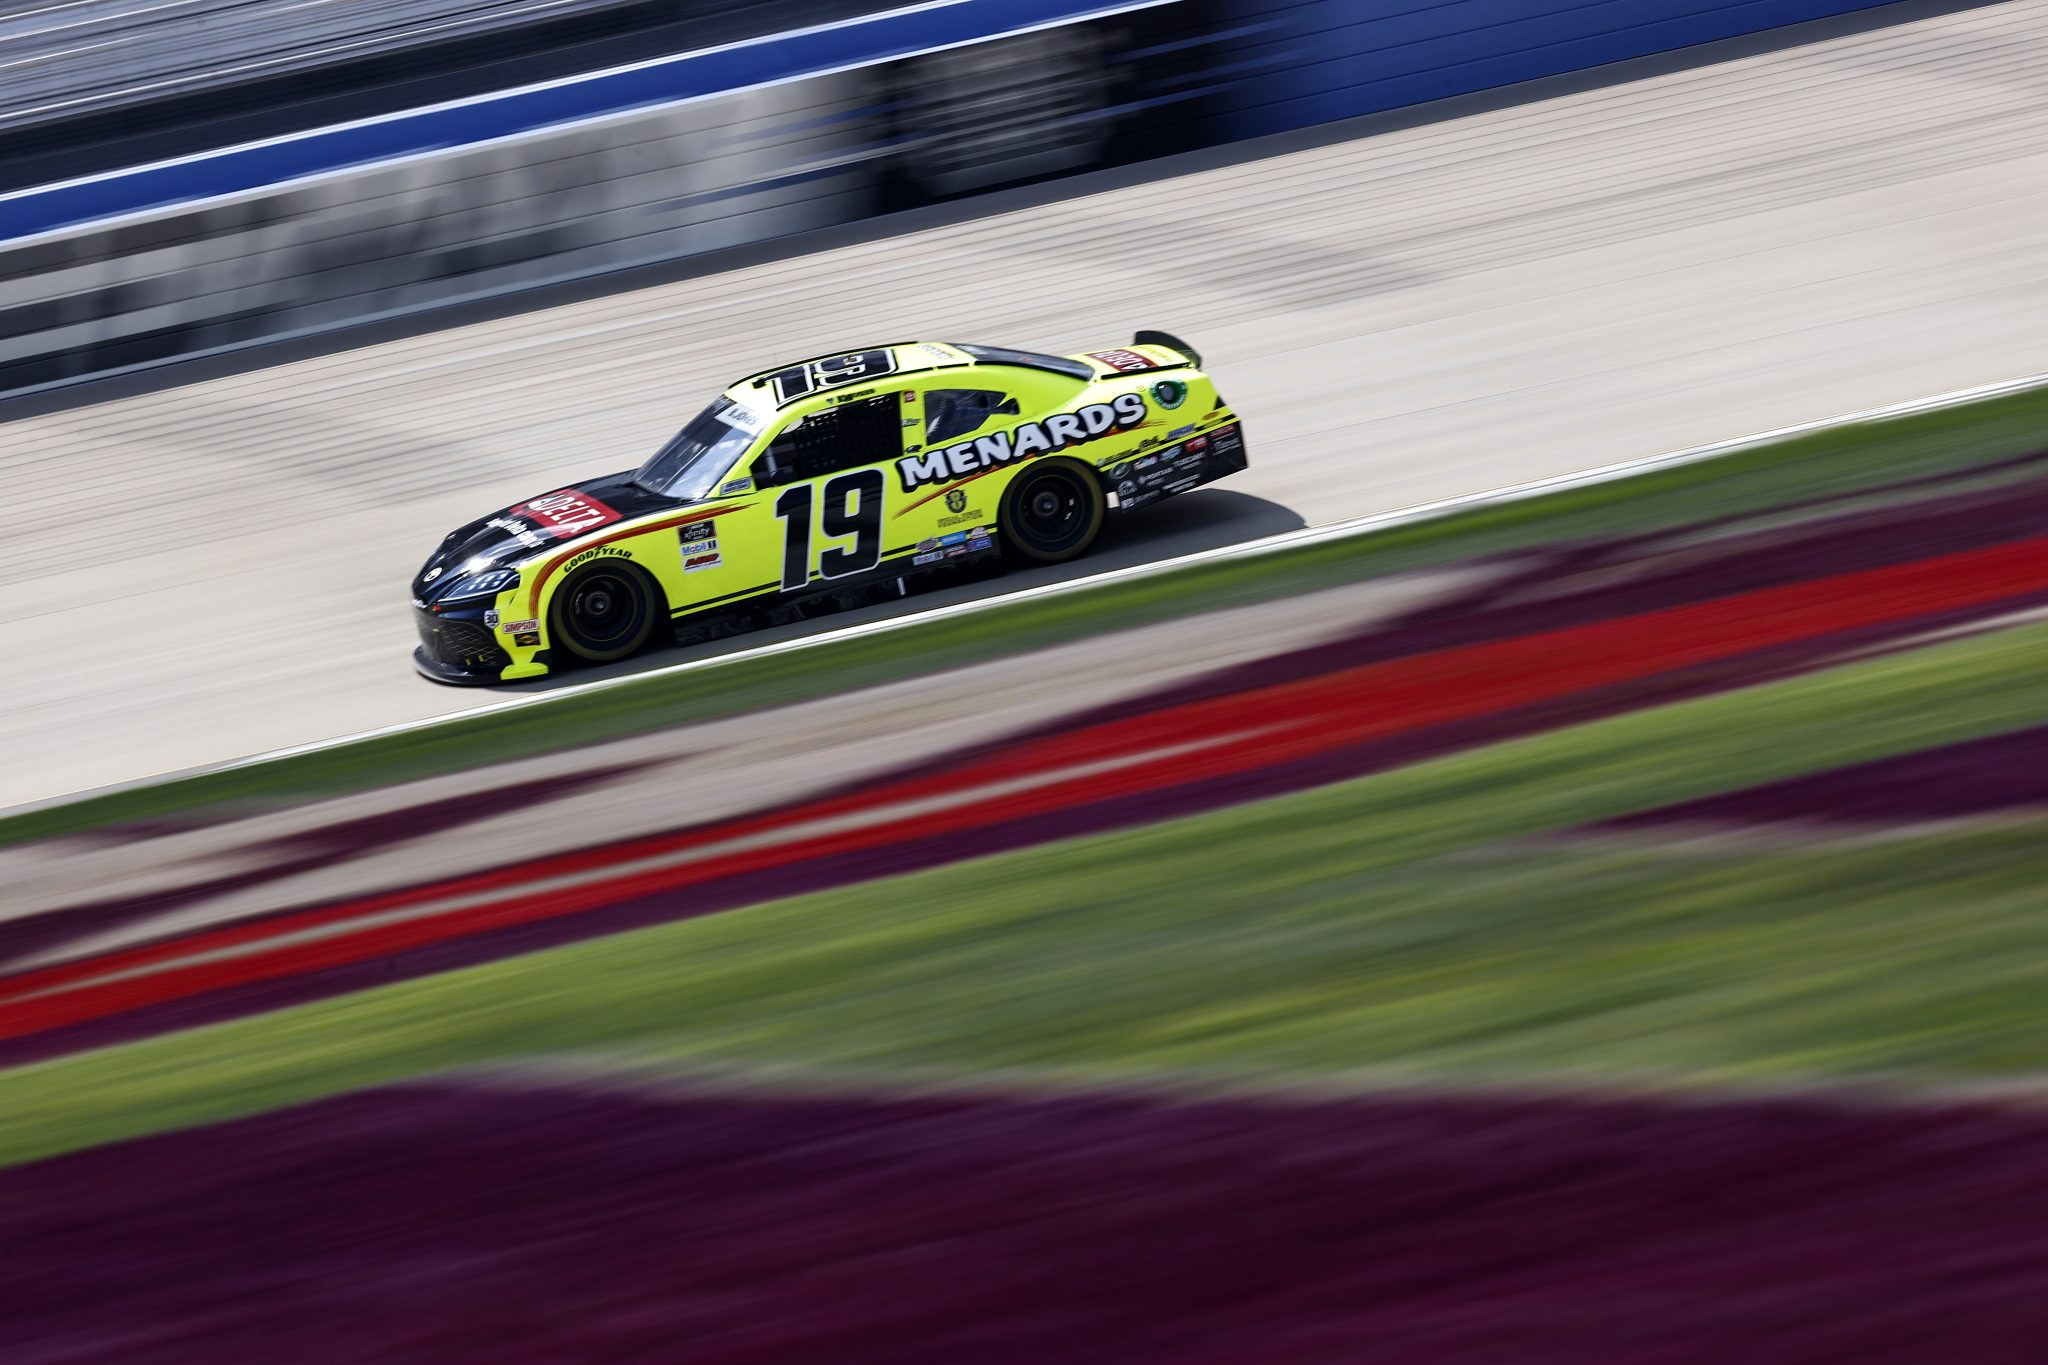 LEBANON, TENNESSEE - JUNE 18: Brandon Jones, driver of the #19 Menards/Delta Faucets Toyota, drives during practice for the NASCAR Xfinity Series Tennessee Lottery 250 at Nashville Superspeedway on June 18, 2021 in Lebanon, Tennessee. (Photo by Jared C. Tilton/Getty Images) | Getty Images